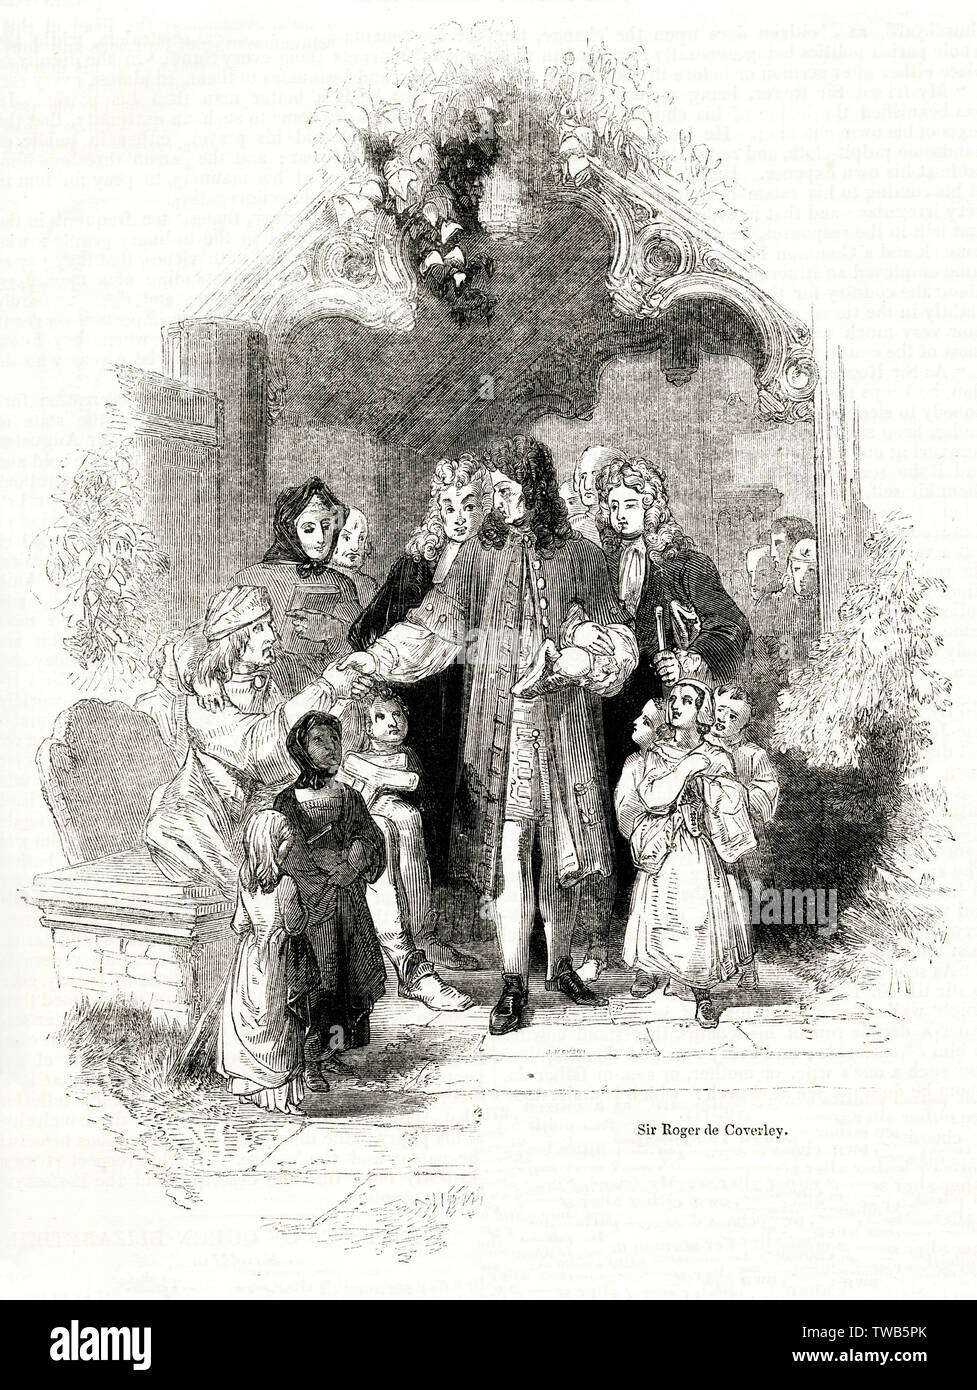 Sir Roger de Coverley, a fictitious country squire character created by Joseph Addison in The Spectator in the early 18th century, after whom a dance was named. Seen here coming out of church, surrounded by his affectionate tenants.      Date: 1843 - Stock Image